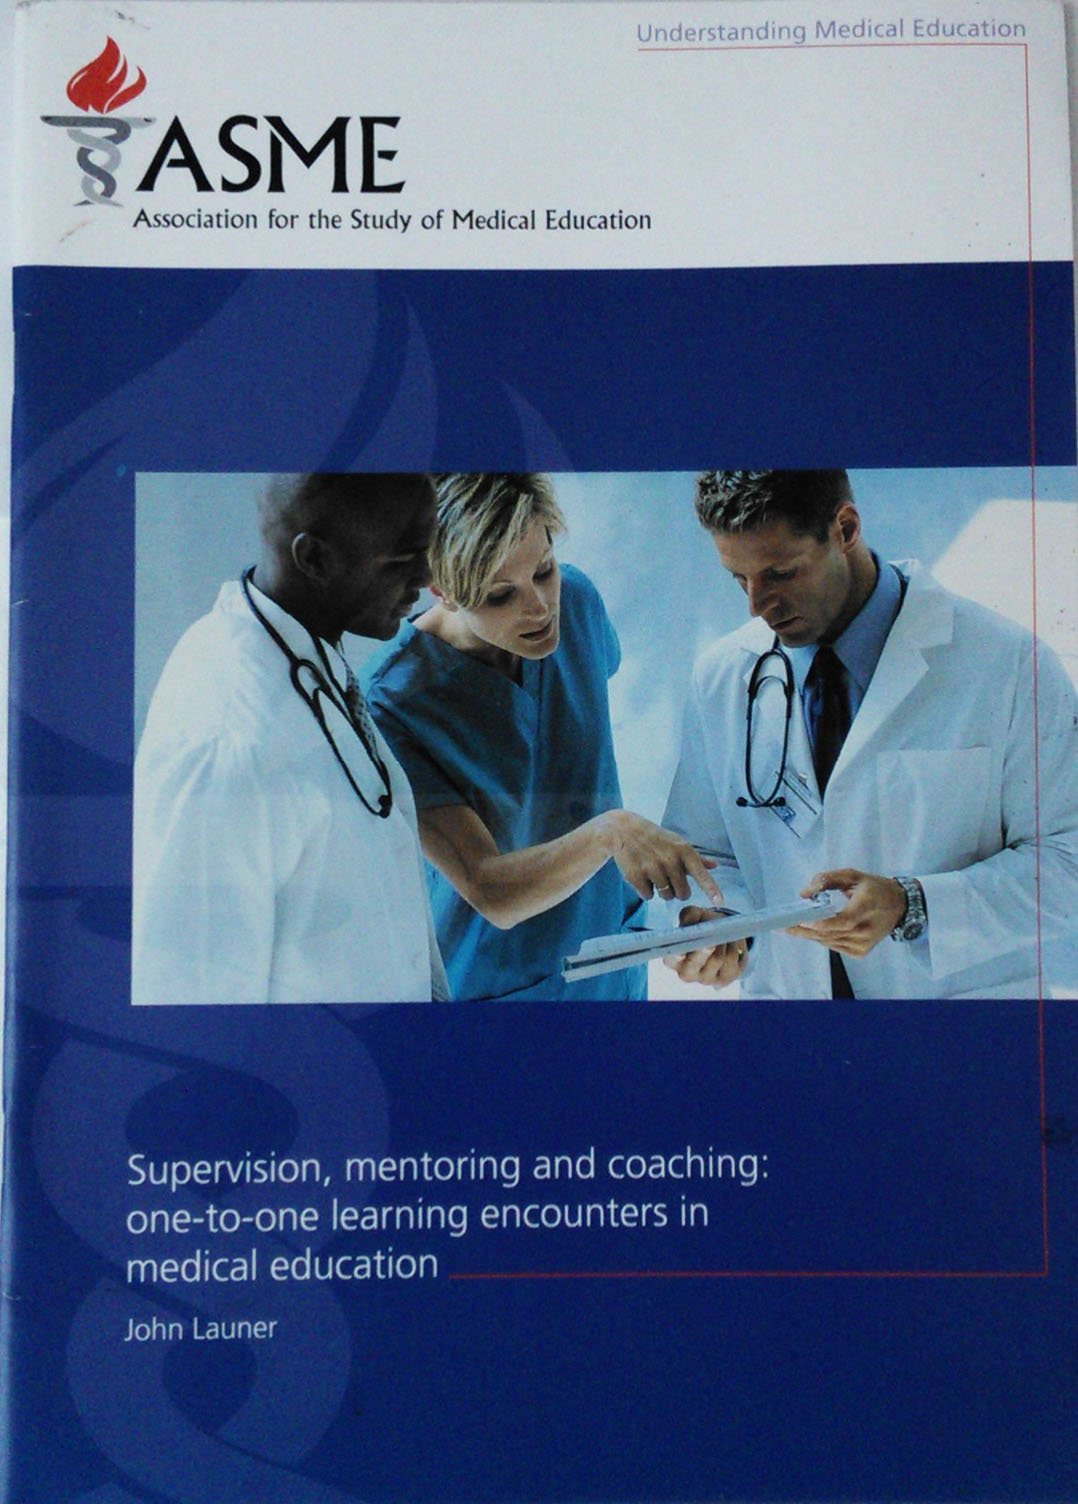 Understanding Medical Education-Association for the Study of Medical Education s